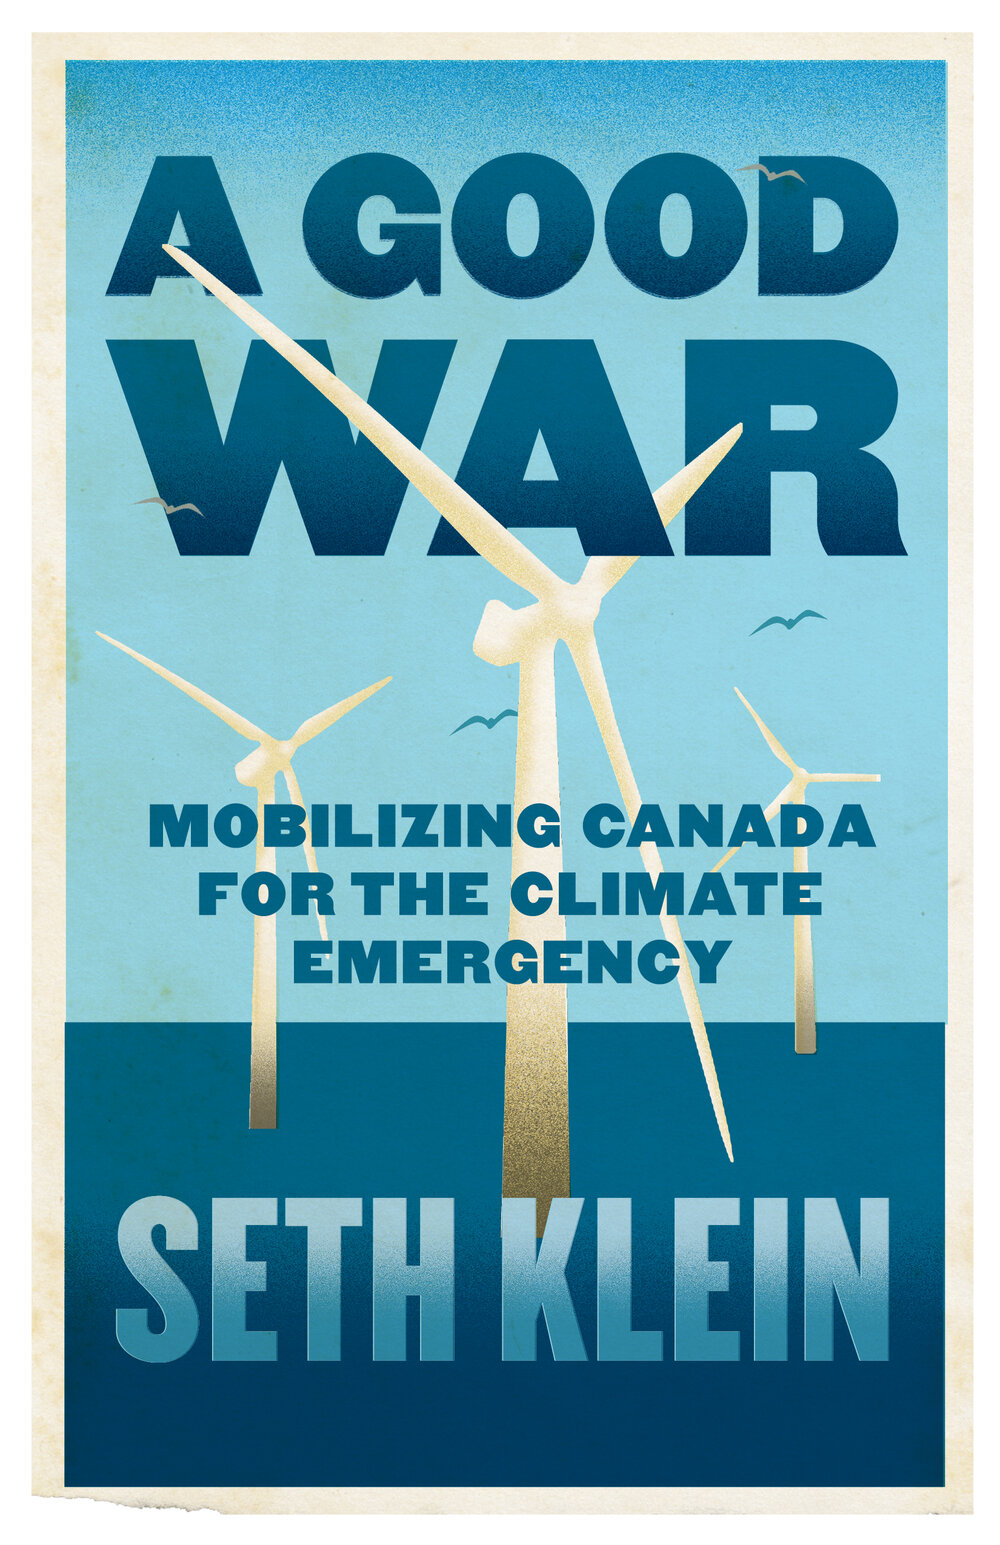 book-A-good-war-mobilizing-canada-for-the-climate-emergency-by-seth-klein.jpg